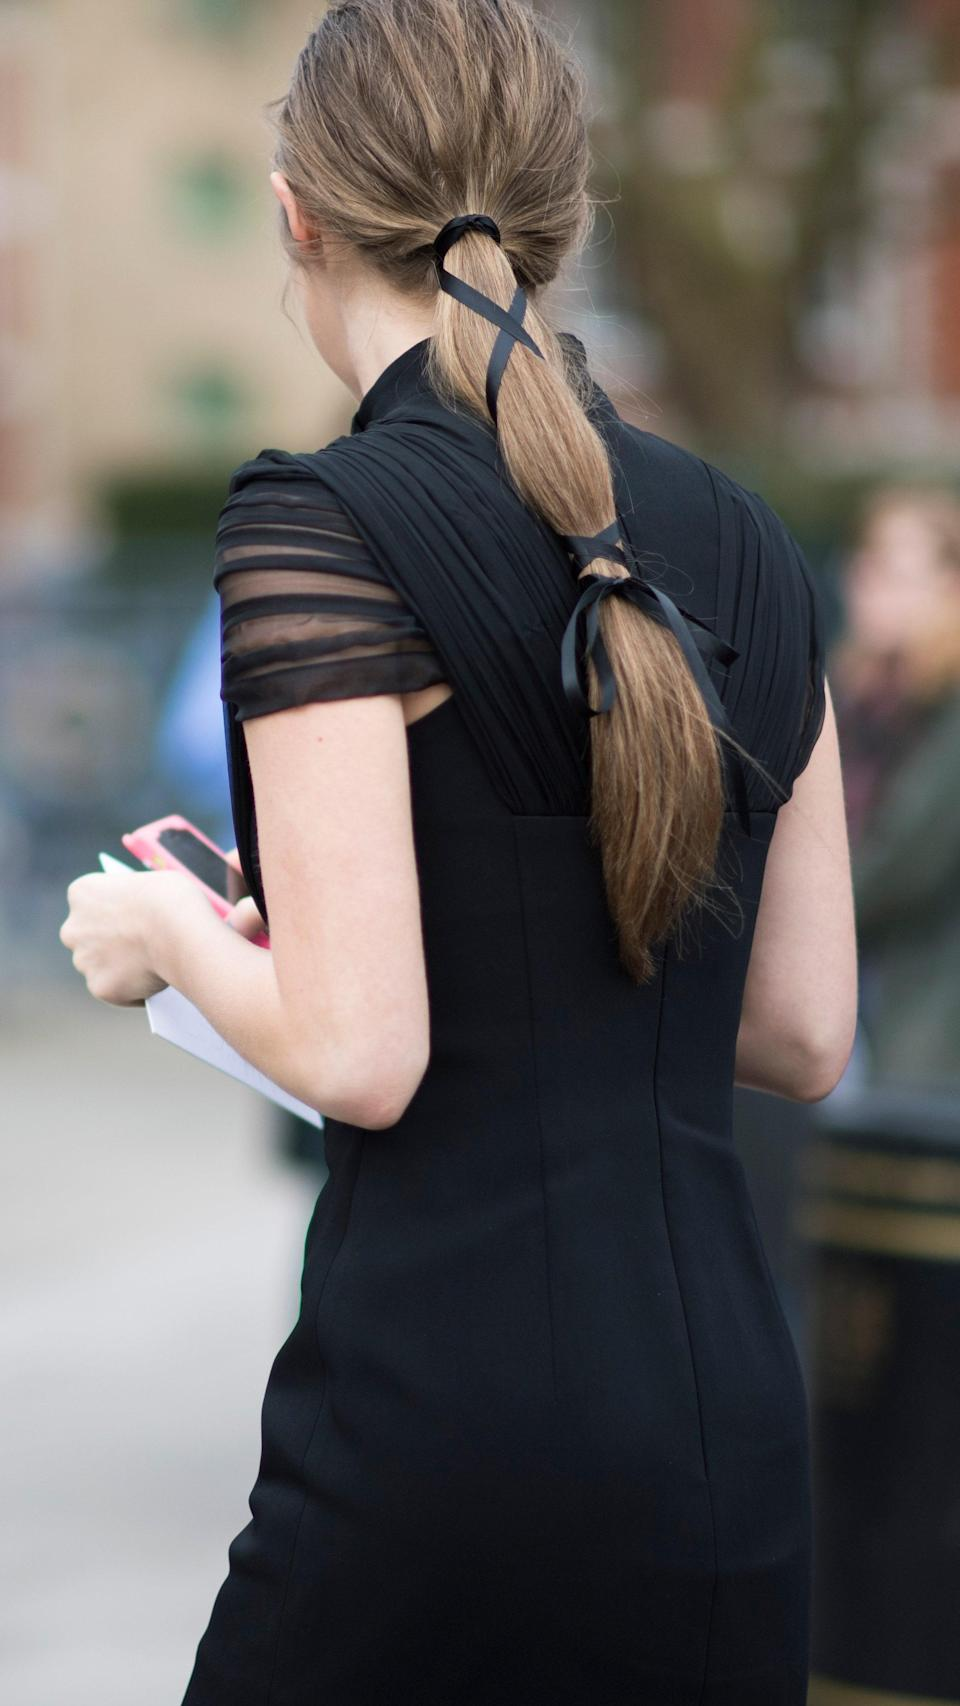 Chic: a twist of ribbon down the length of your ponytail.